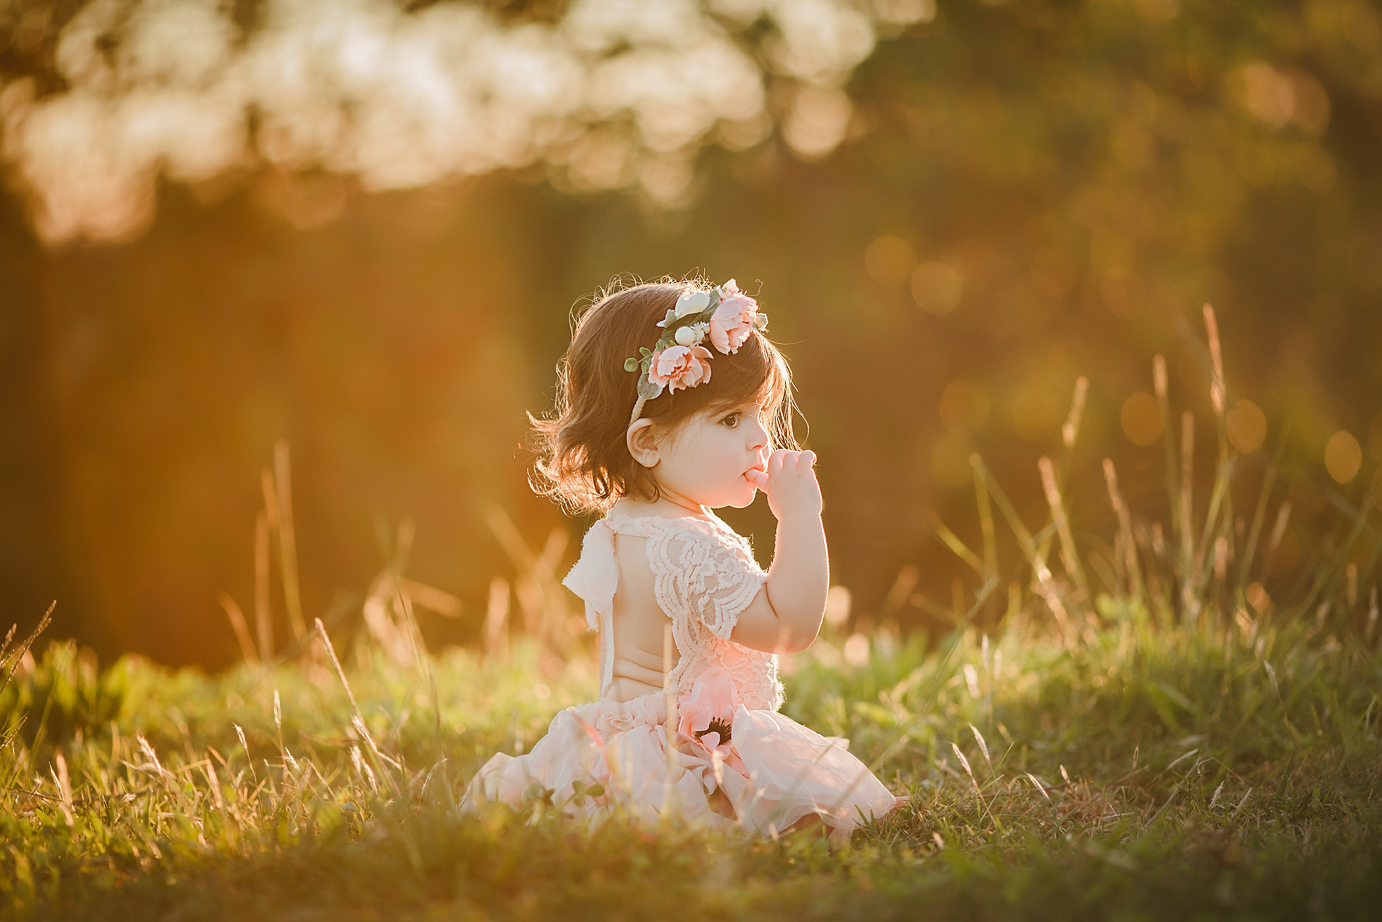 orange-county-baby-photographer-outdoor-fine-art-irvine-one-year-sunset-beautiful-baby-girl.jpg